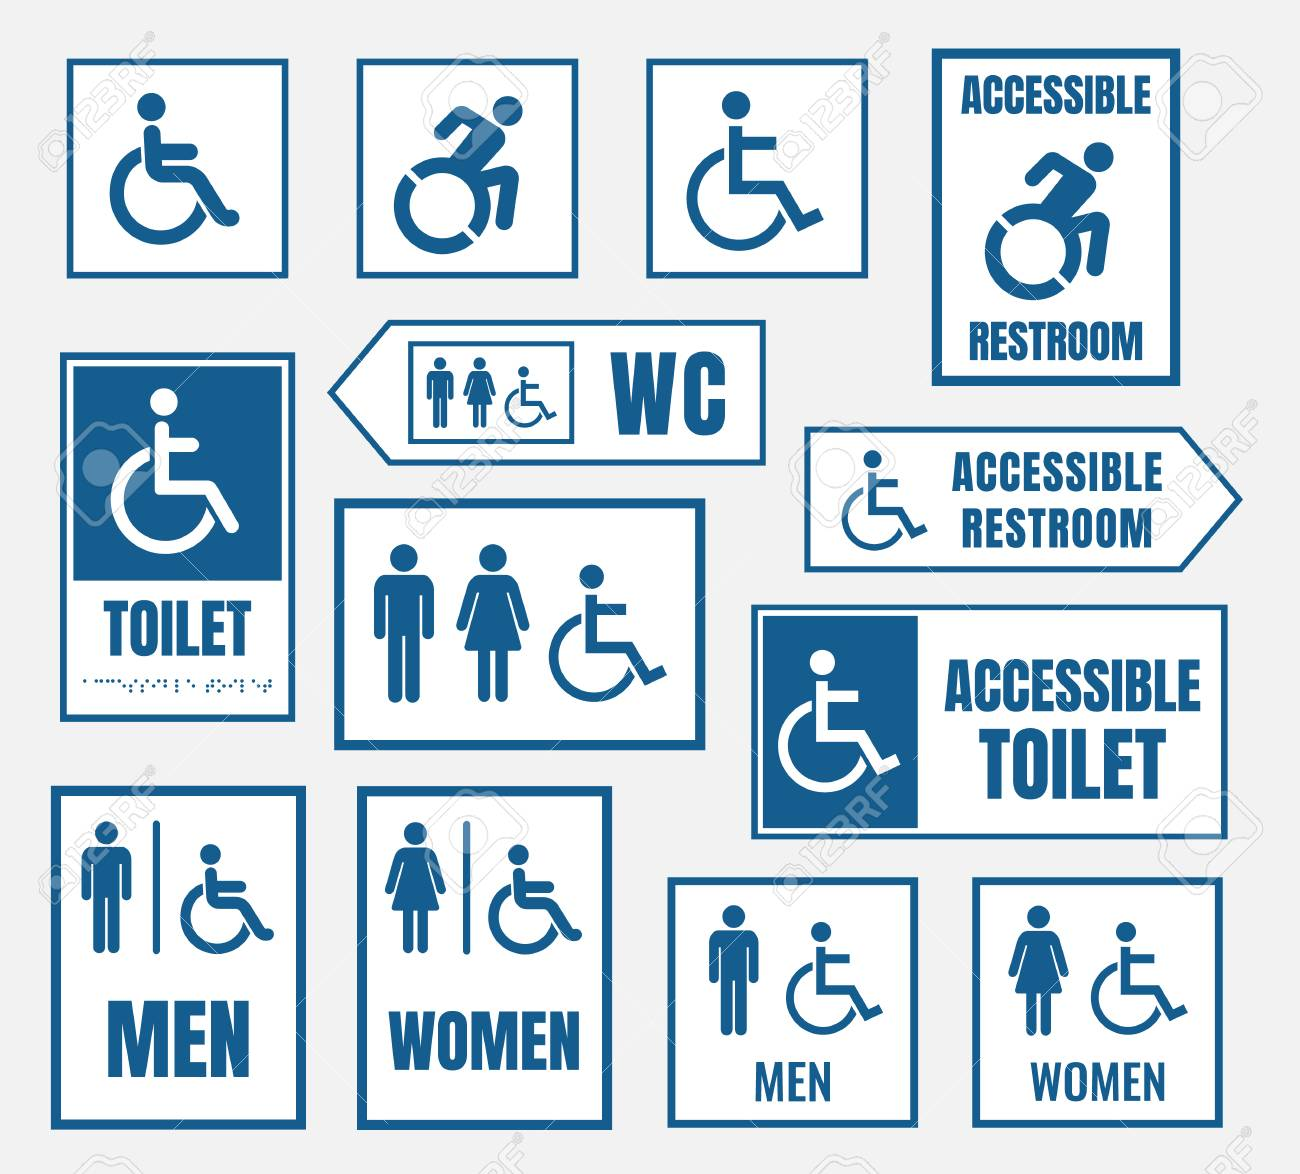 . accessible restroom signs  toilet sign for disabled people